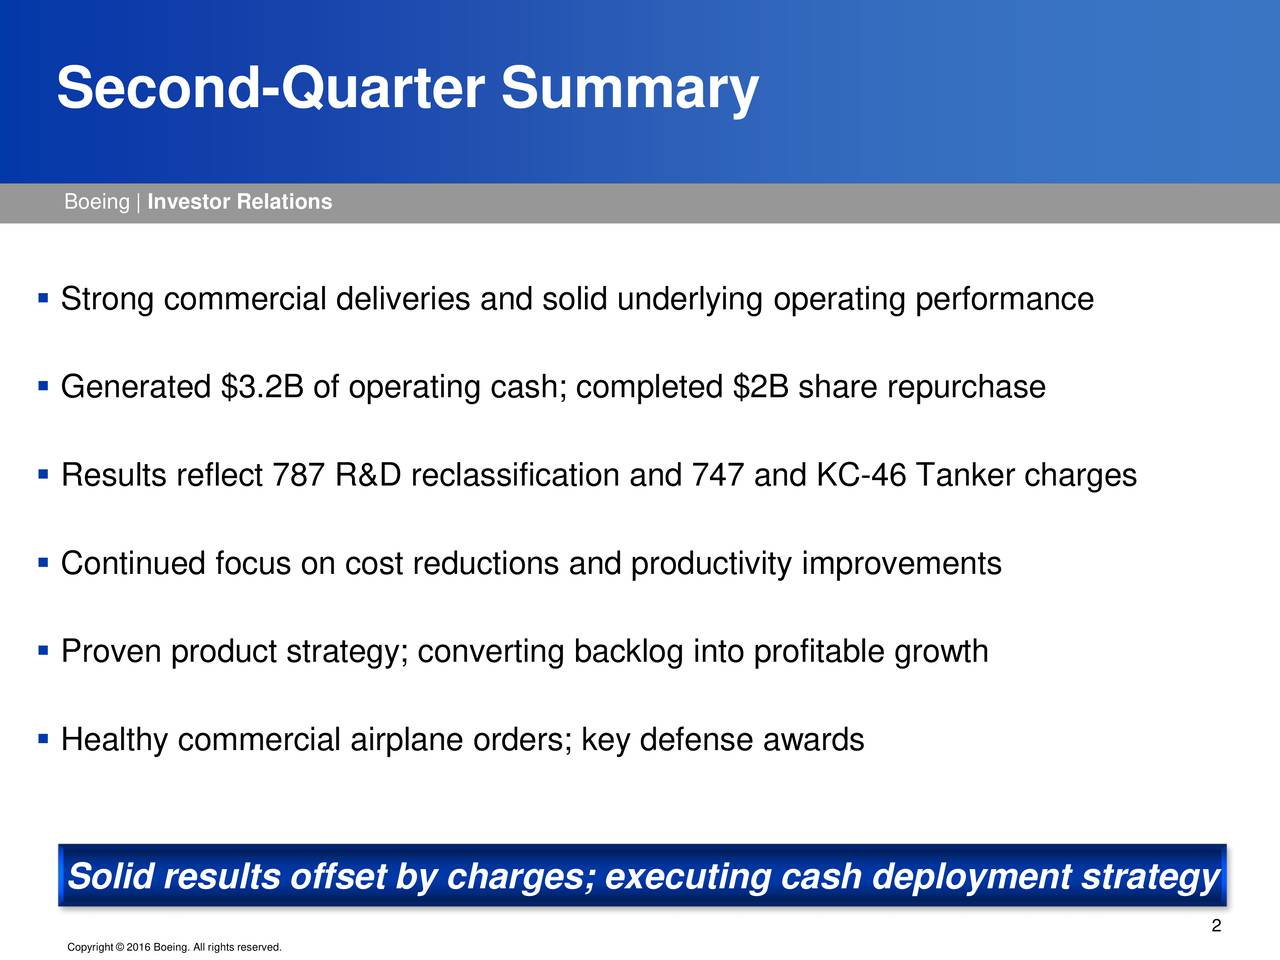 Boeing | Investor Relations Strong commercial deliveries and solid underlying operating performance Generated $3.2B of operating cash; completed $2B share repurchase Results reflect 787 R&D reclassification and 747 and KC-46 Tanker charges Continued focus on cost reductions and productivity improvements Proven product strategy; converting backlog into profitable growth Healthy commercial airplane orders; key defense awards Solid results offset by charges; executing cash deployment strategy 2